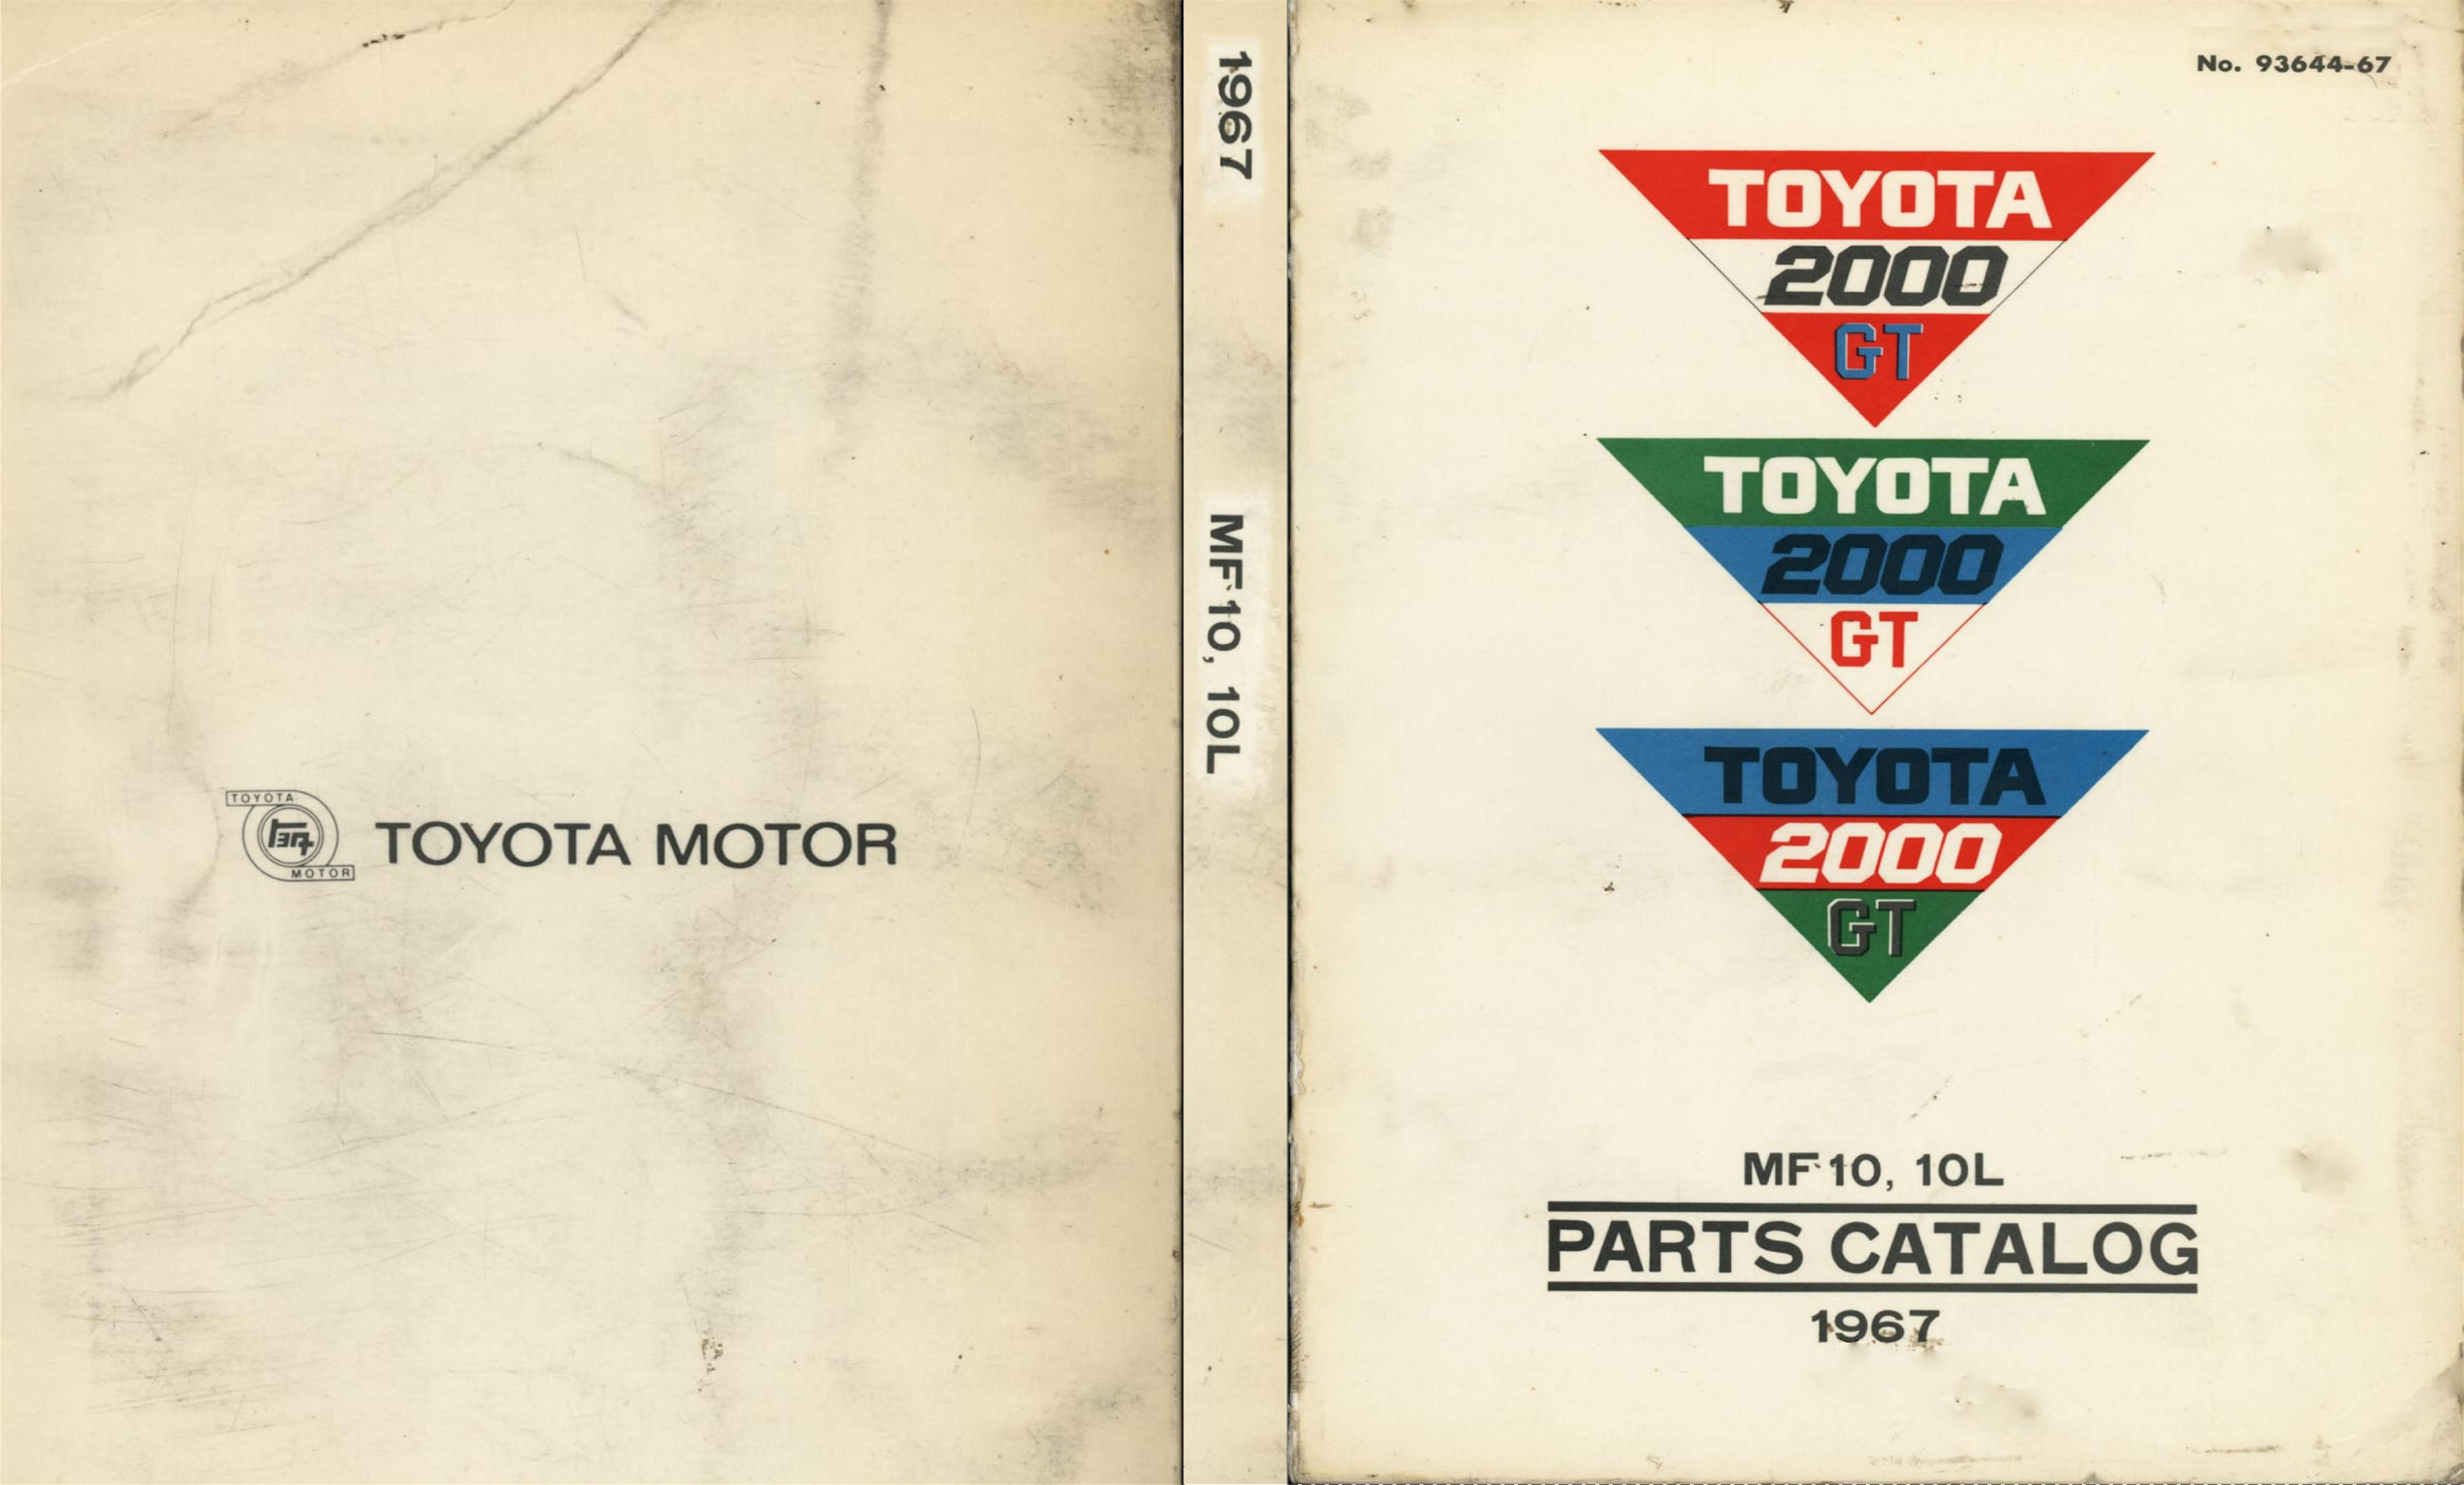 Toyota 2000gt parts manual by clint weis 3500 thebookpatch toyota 2000gt parts manual cover image fandeluxe Choice Image